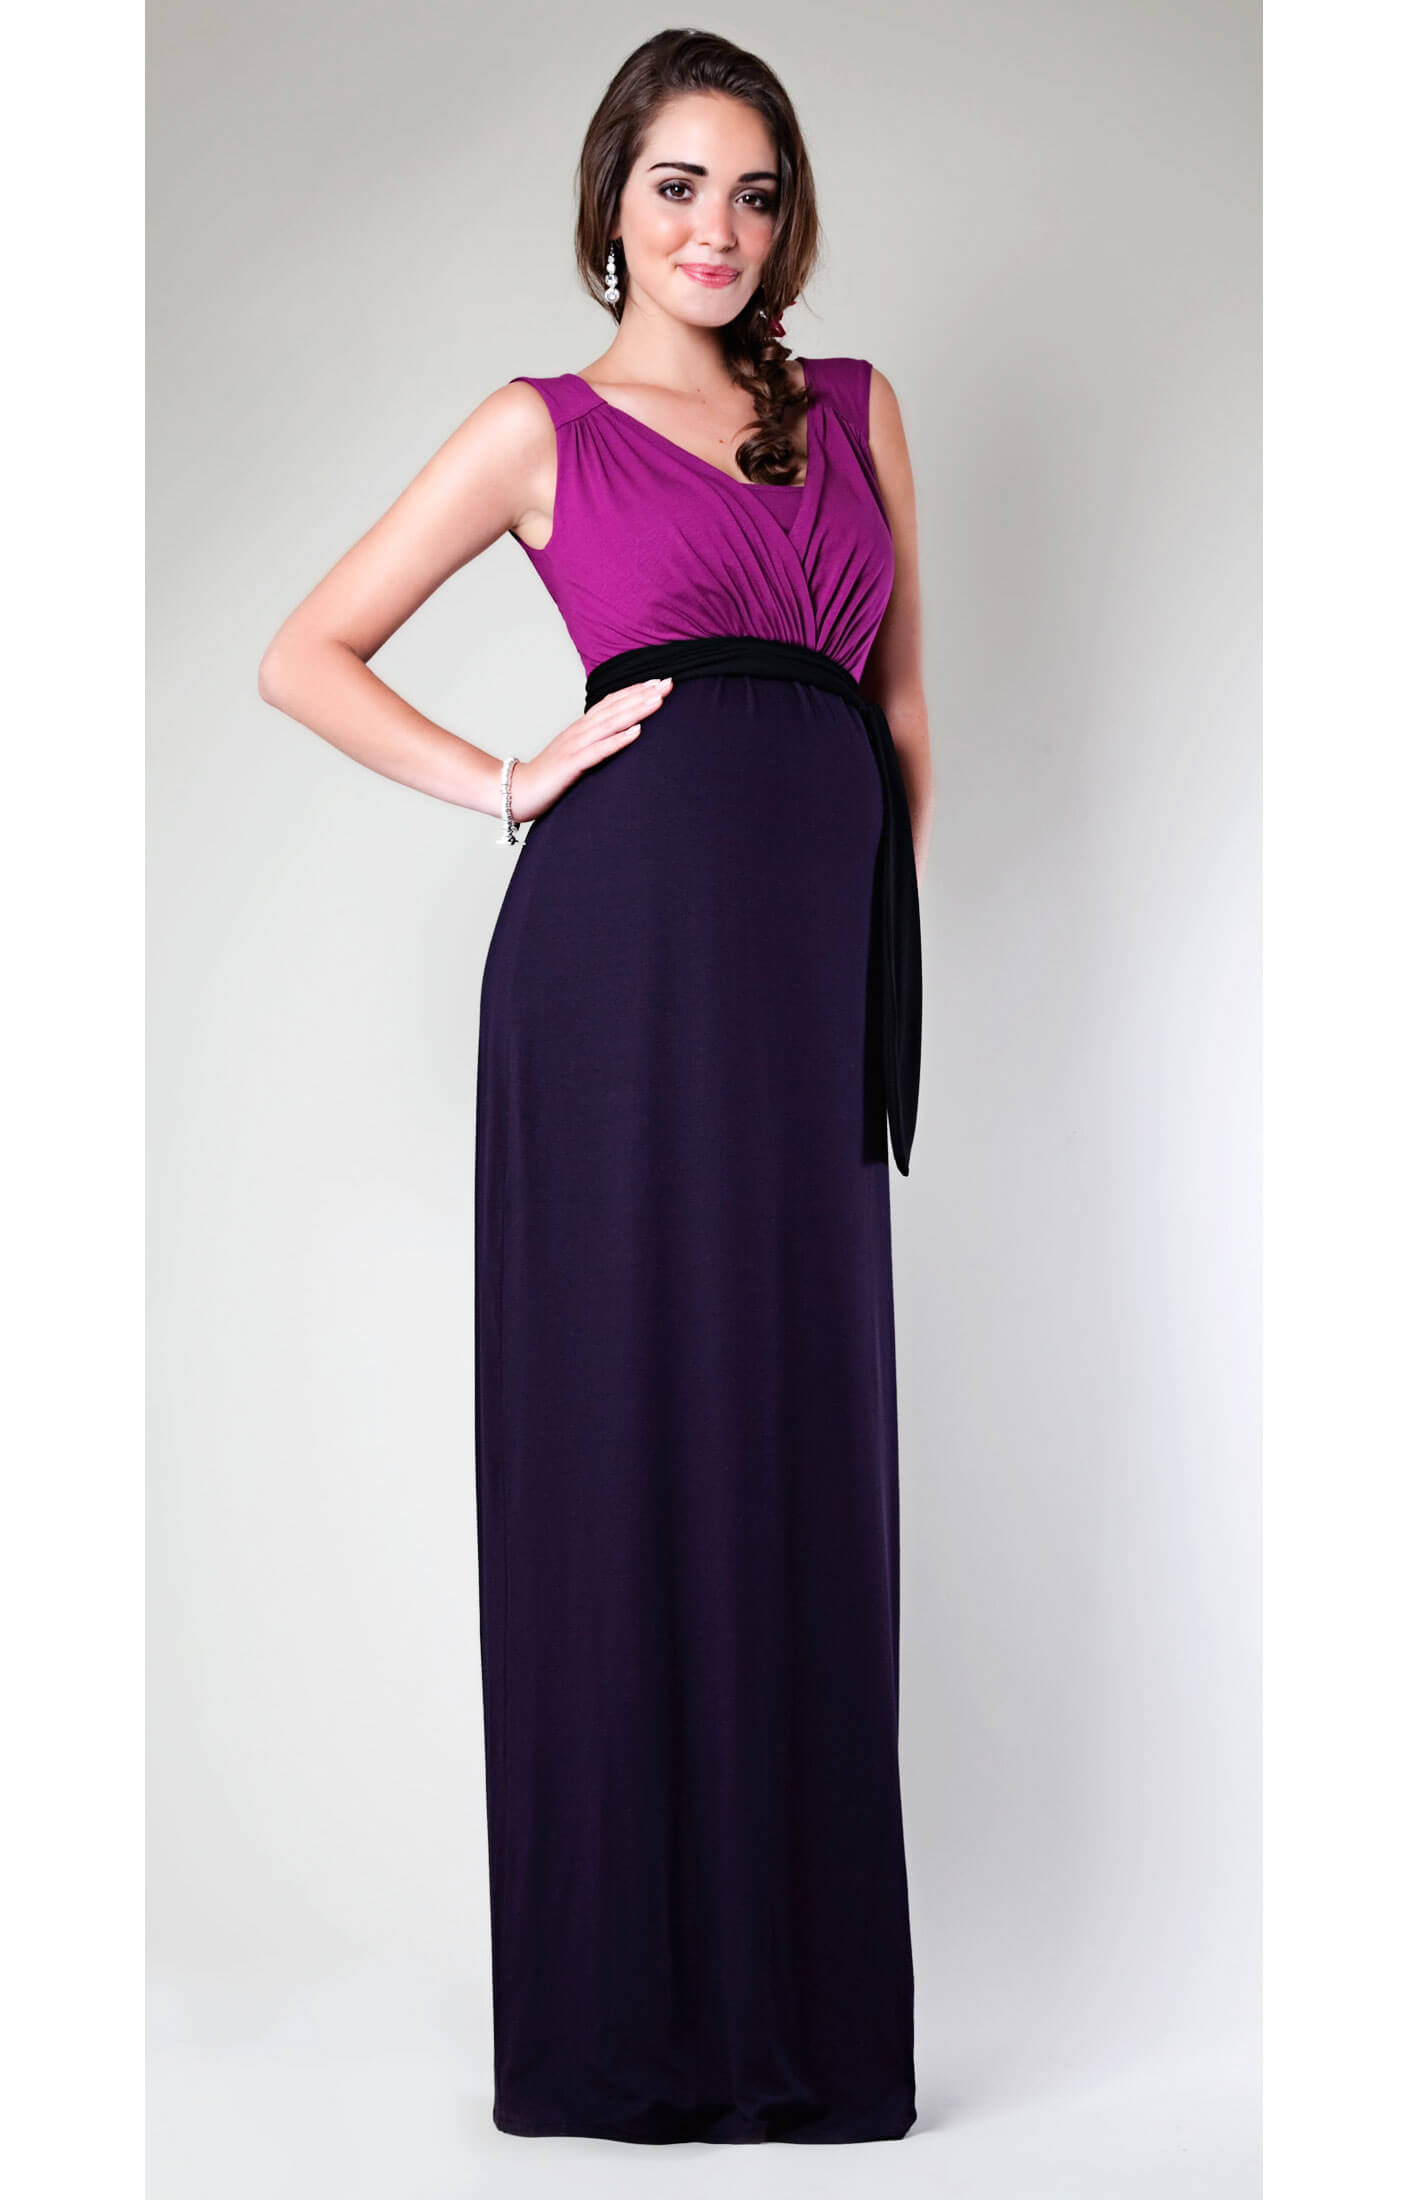 maternity maxi dress for wedding maxi berry maternity jersey dress maternity wedding 5753